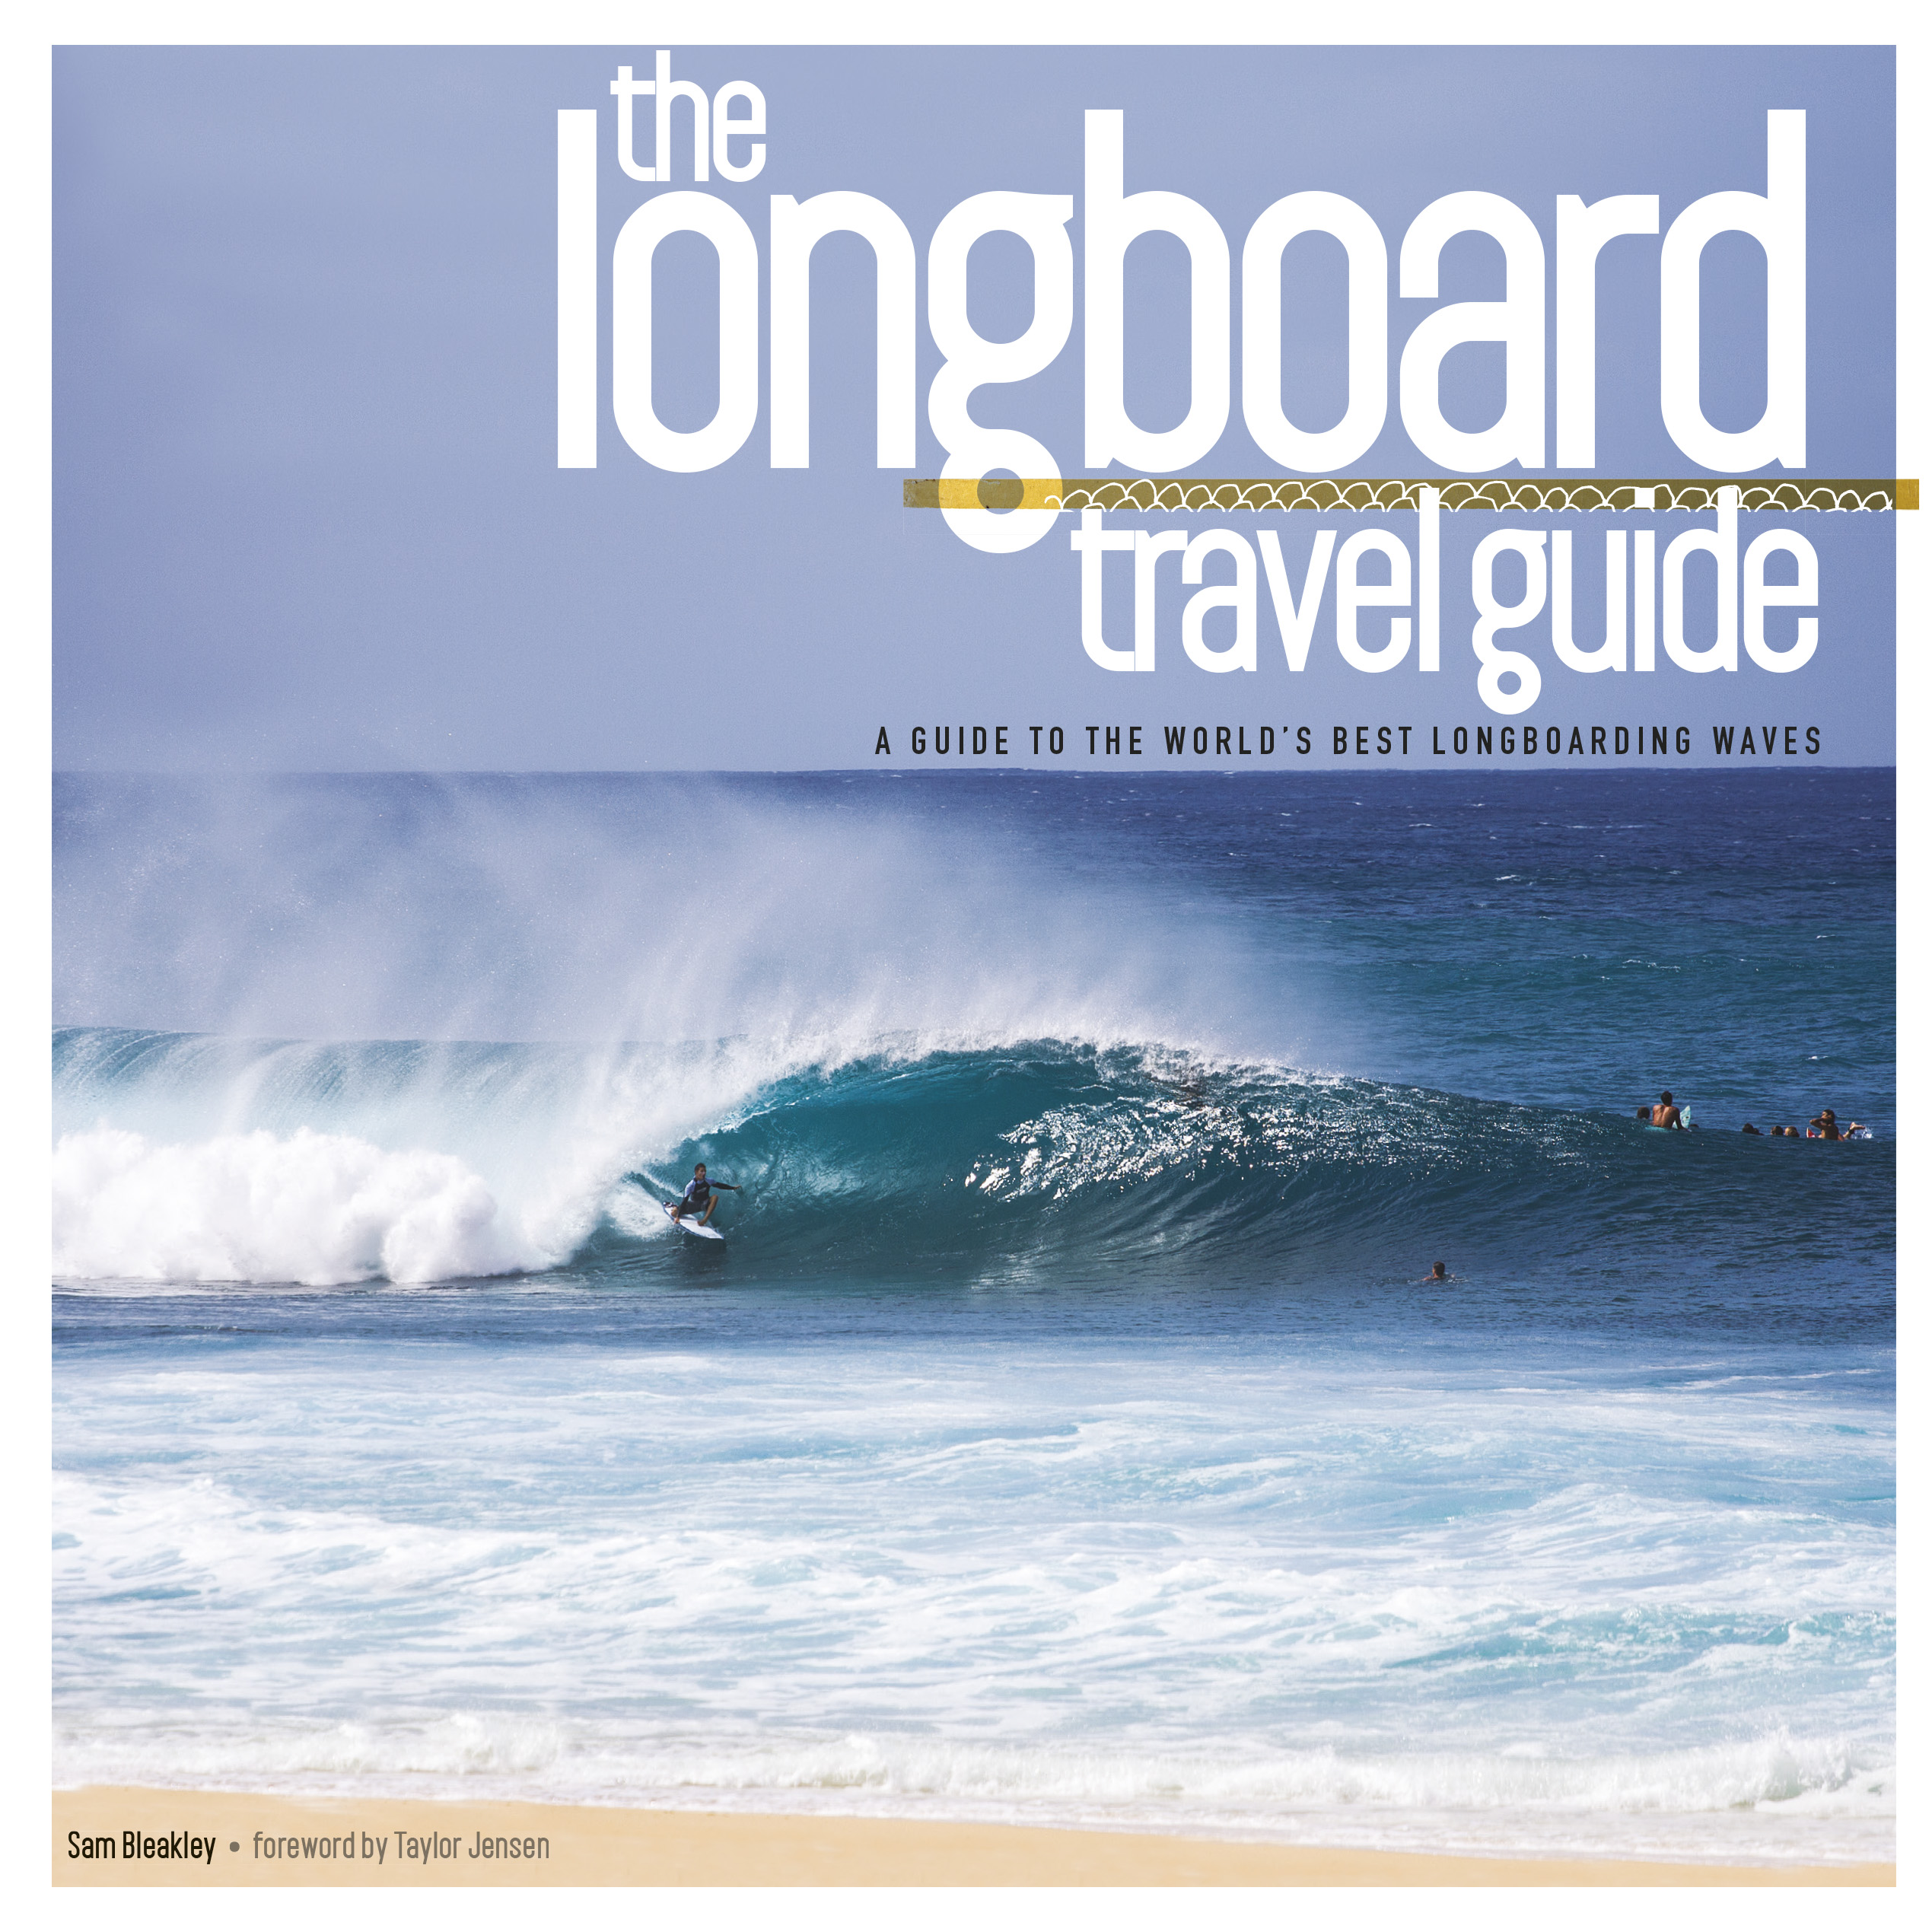 longboard guide to surf travel 13.indd